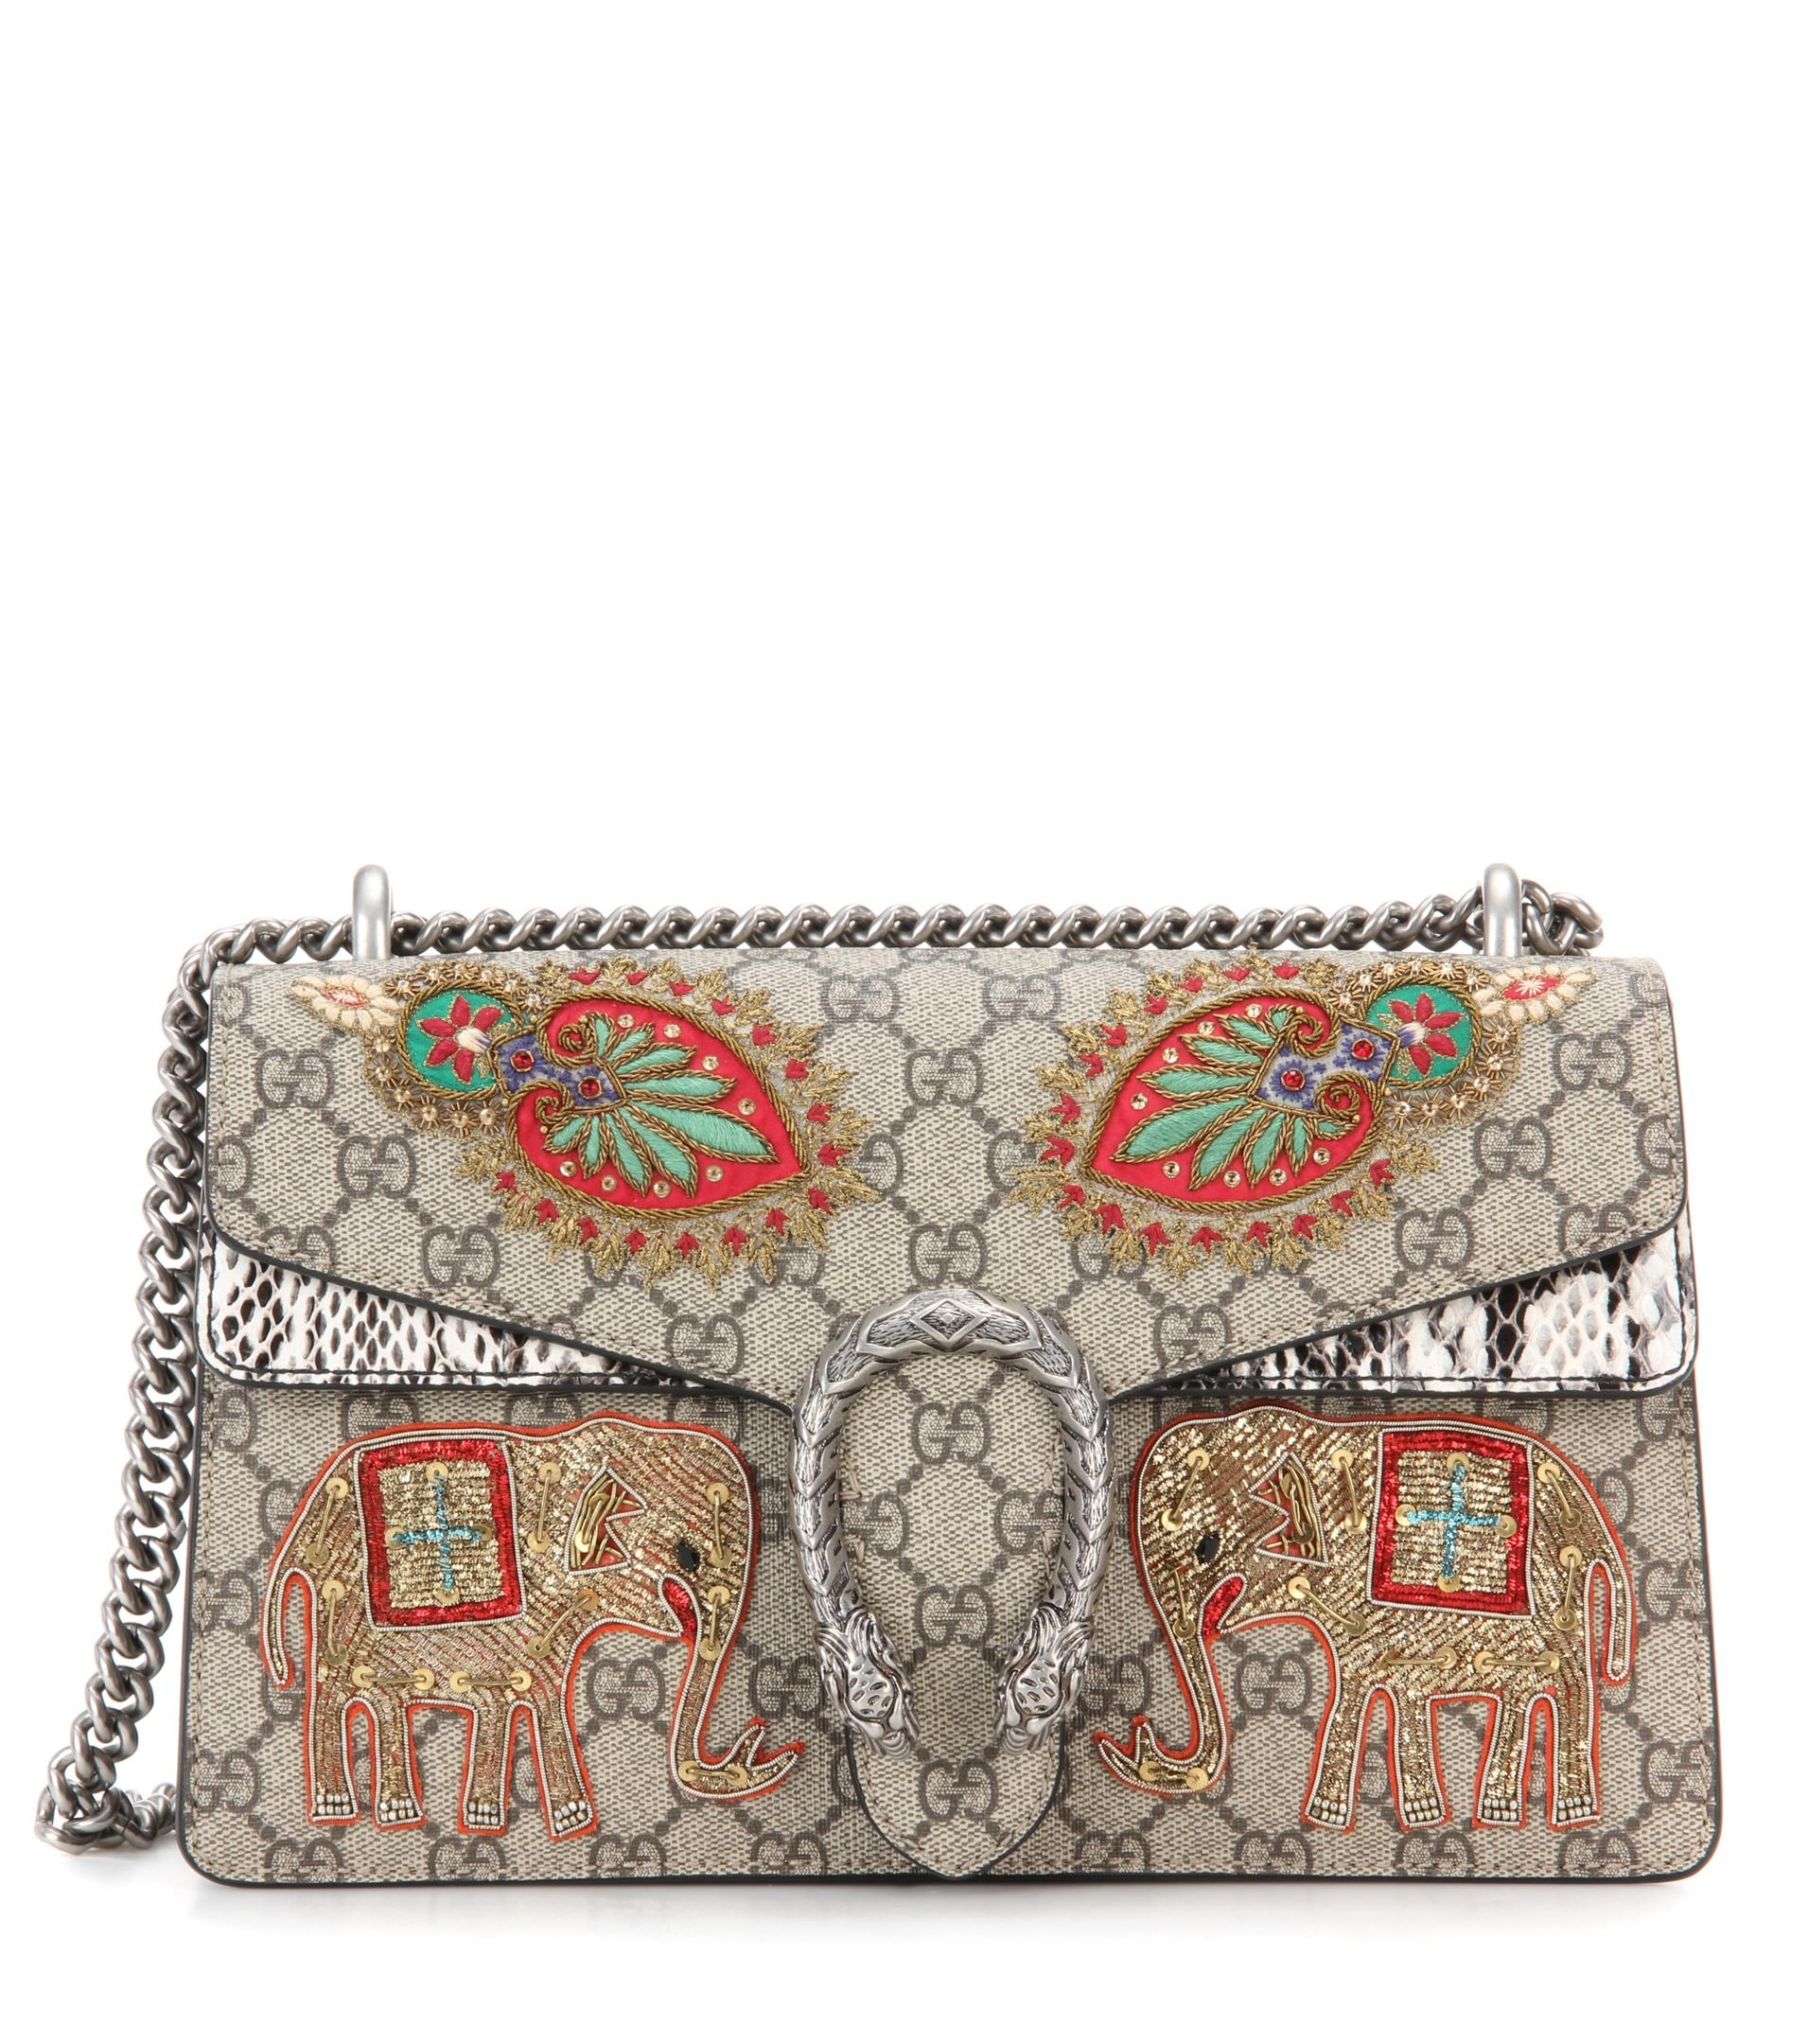 aea72cb5d239 Gucci Dionysus Gg Supreme Small Coated Canvas And Suede Shoulder Bag ...